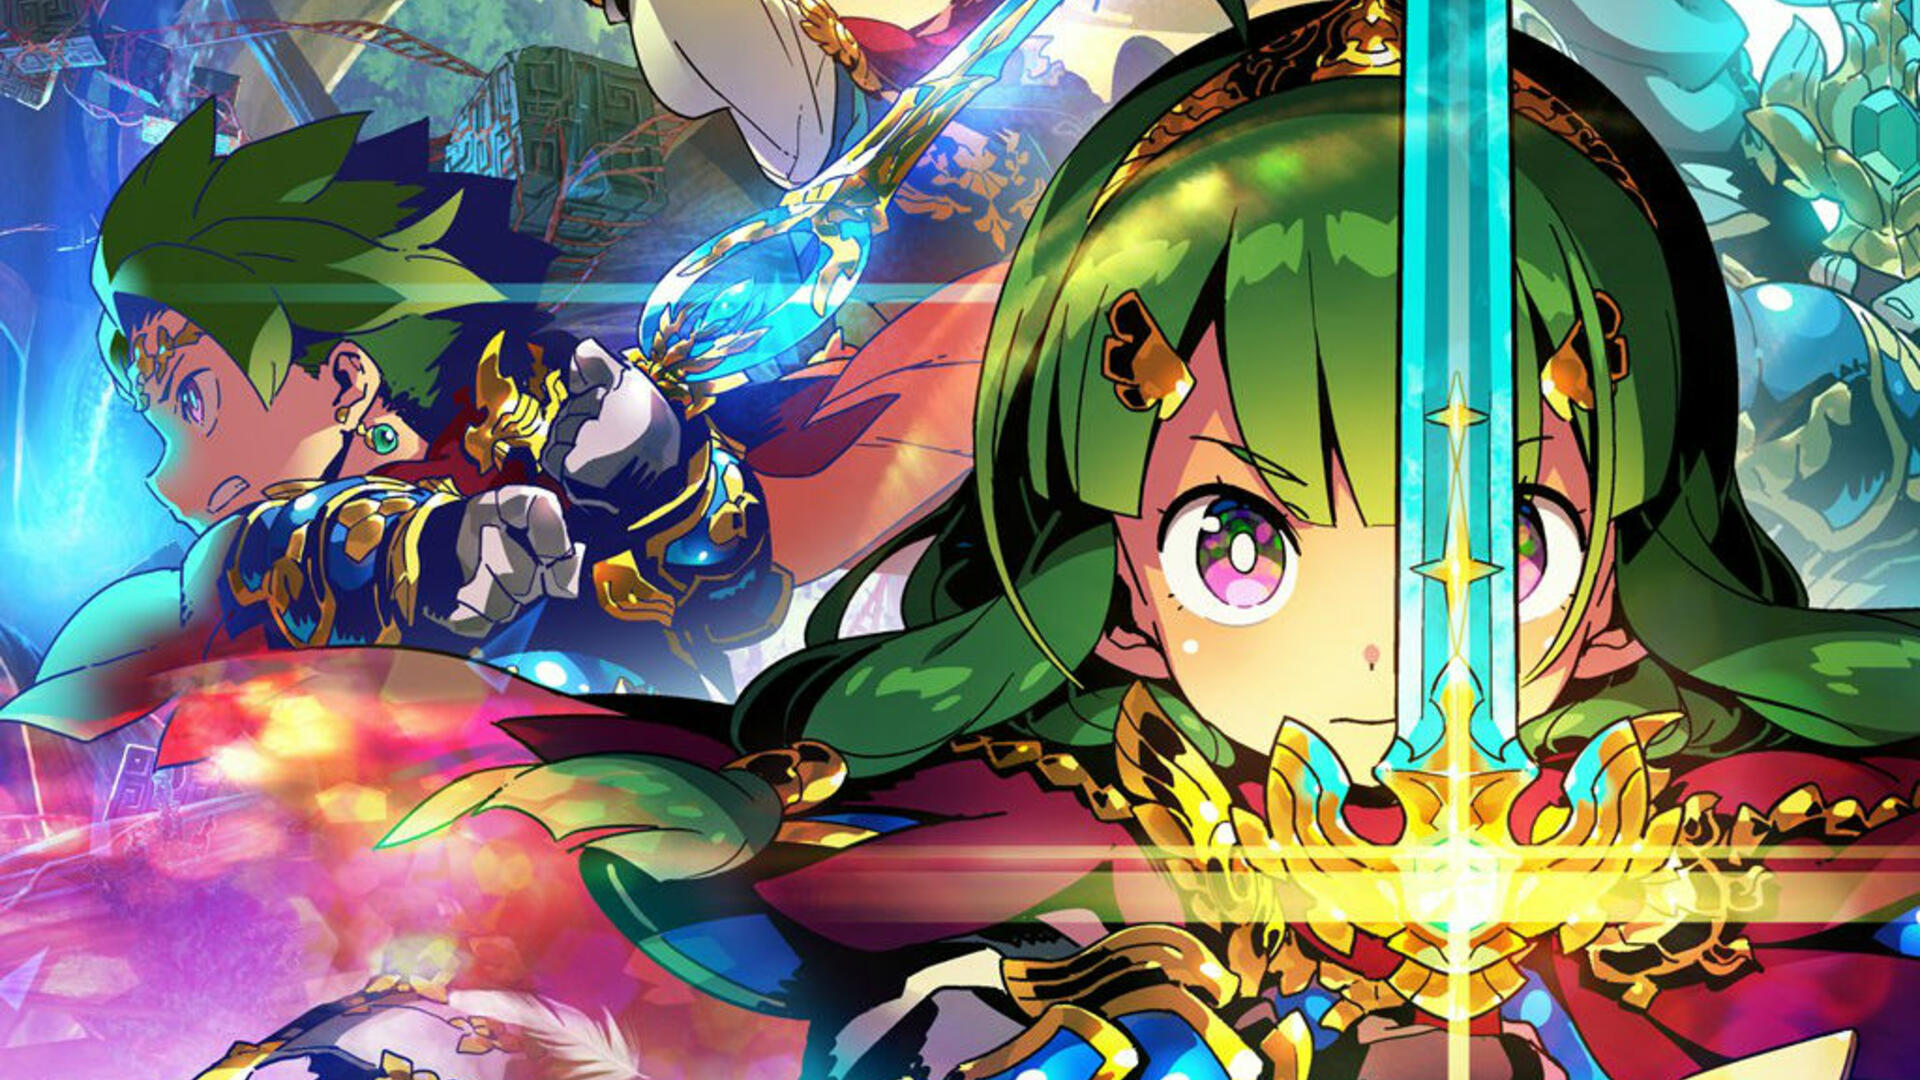 Etrian Odyssey Nexus Makes Me Concerned About What Comes Next for the Series